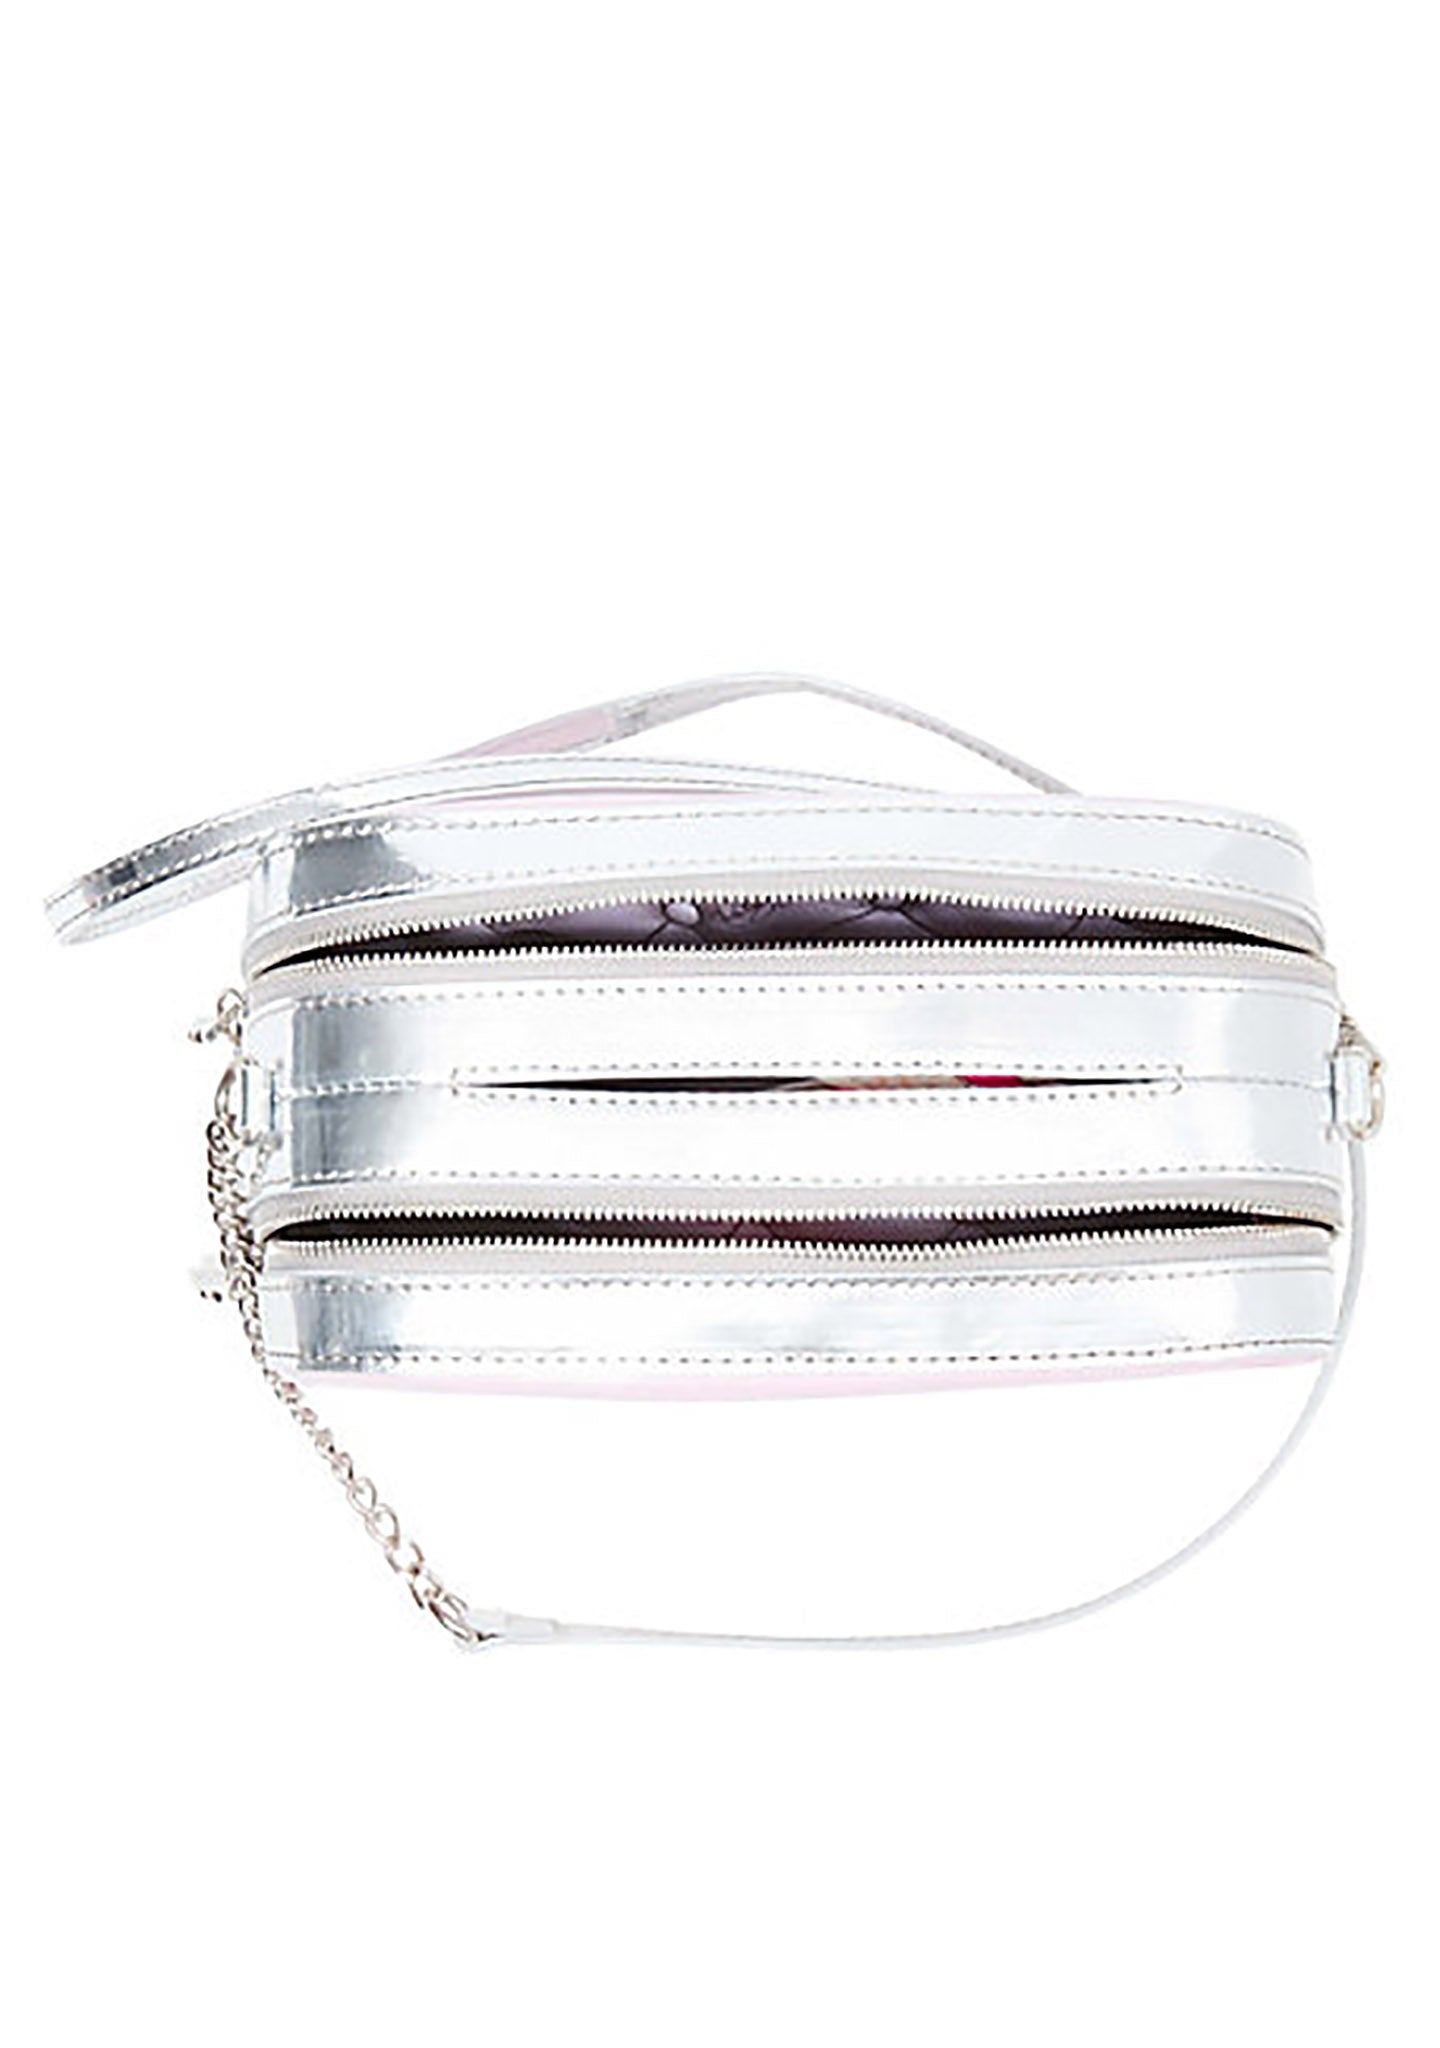 Betsey Johnson Kitsch A Toast To You Crossbody Bag in Silver